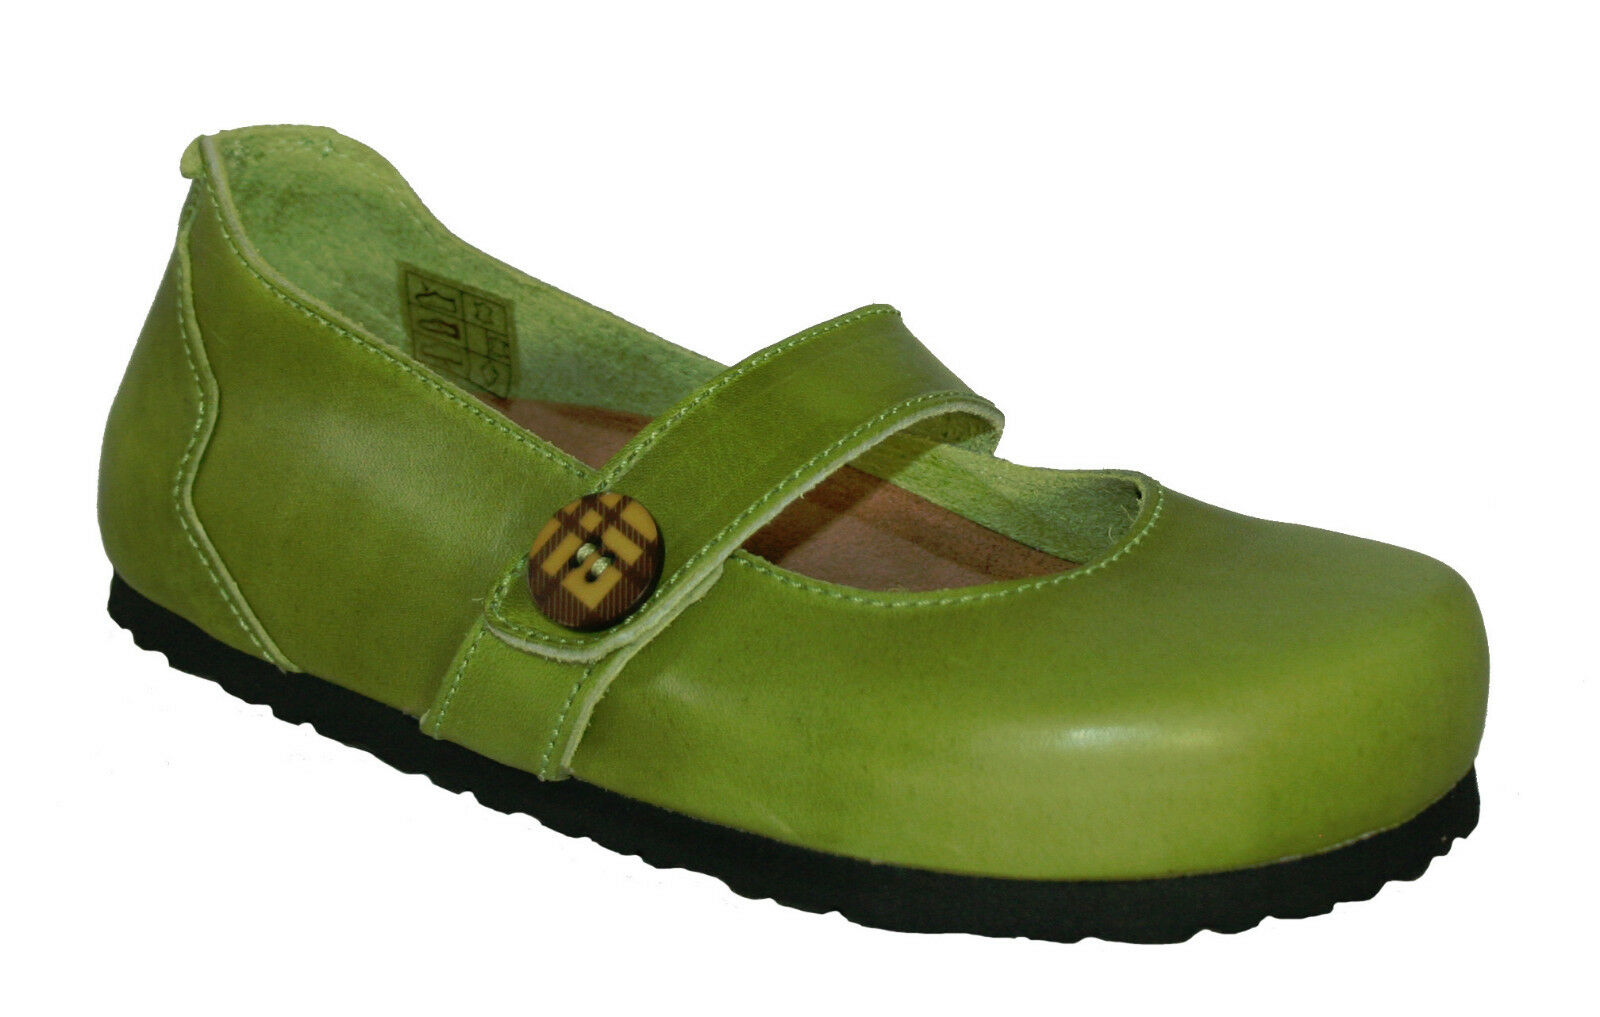 Oxygen Footbed shoes Hastings Apple Green sizes 36-41 (UK 3-8)